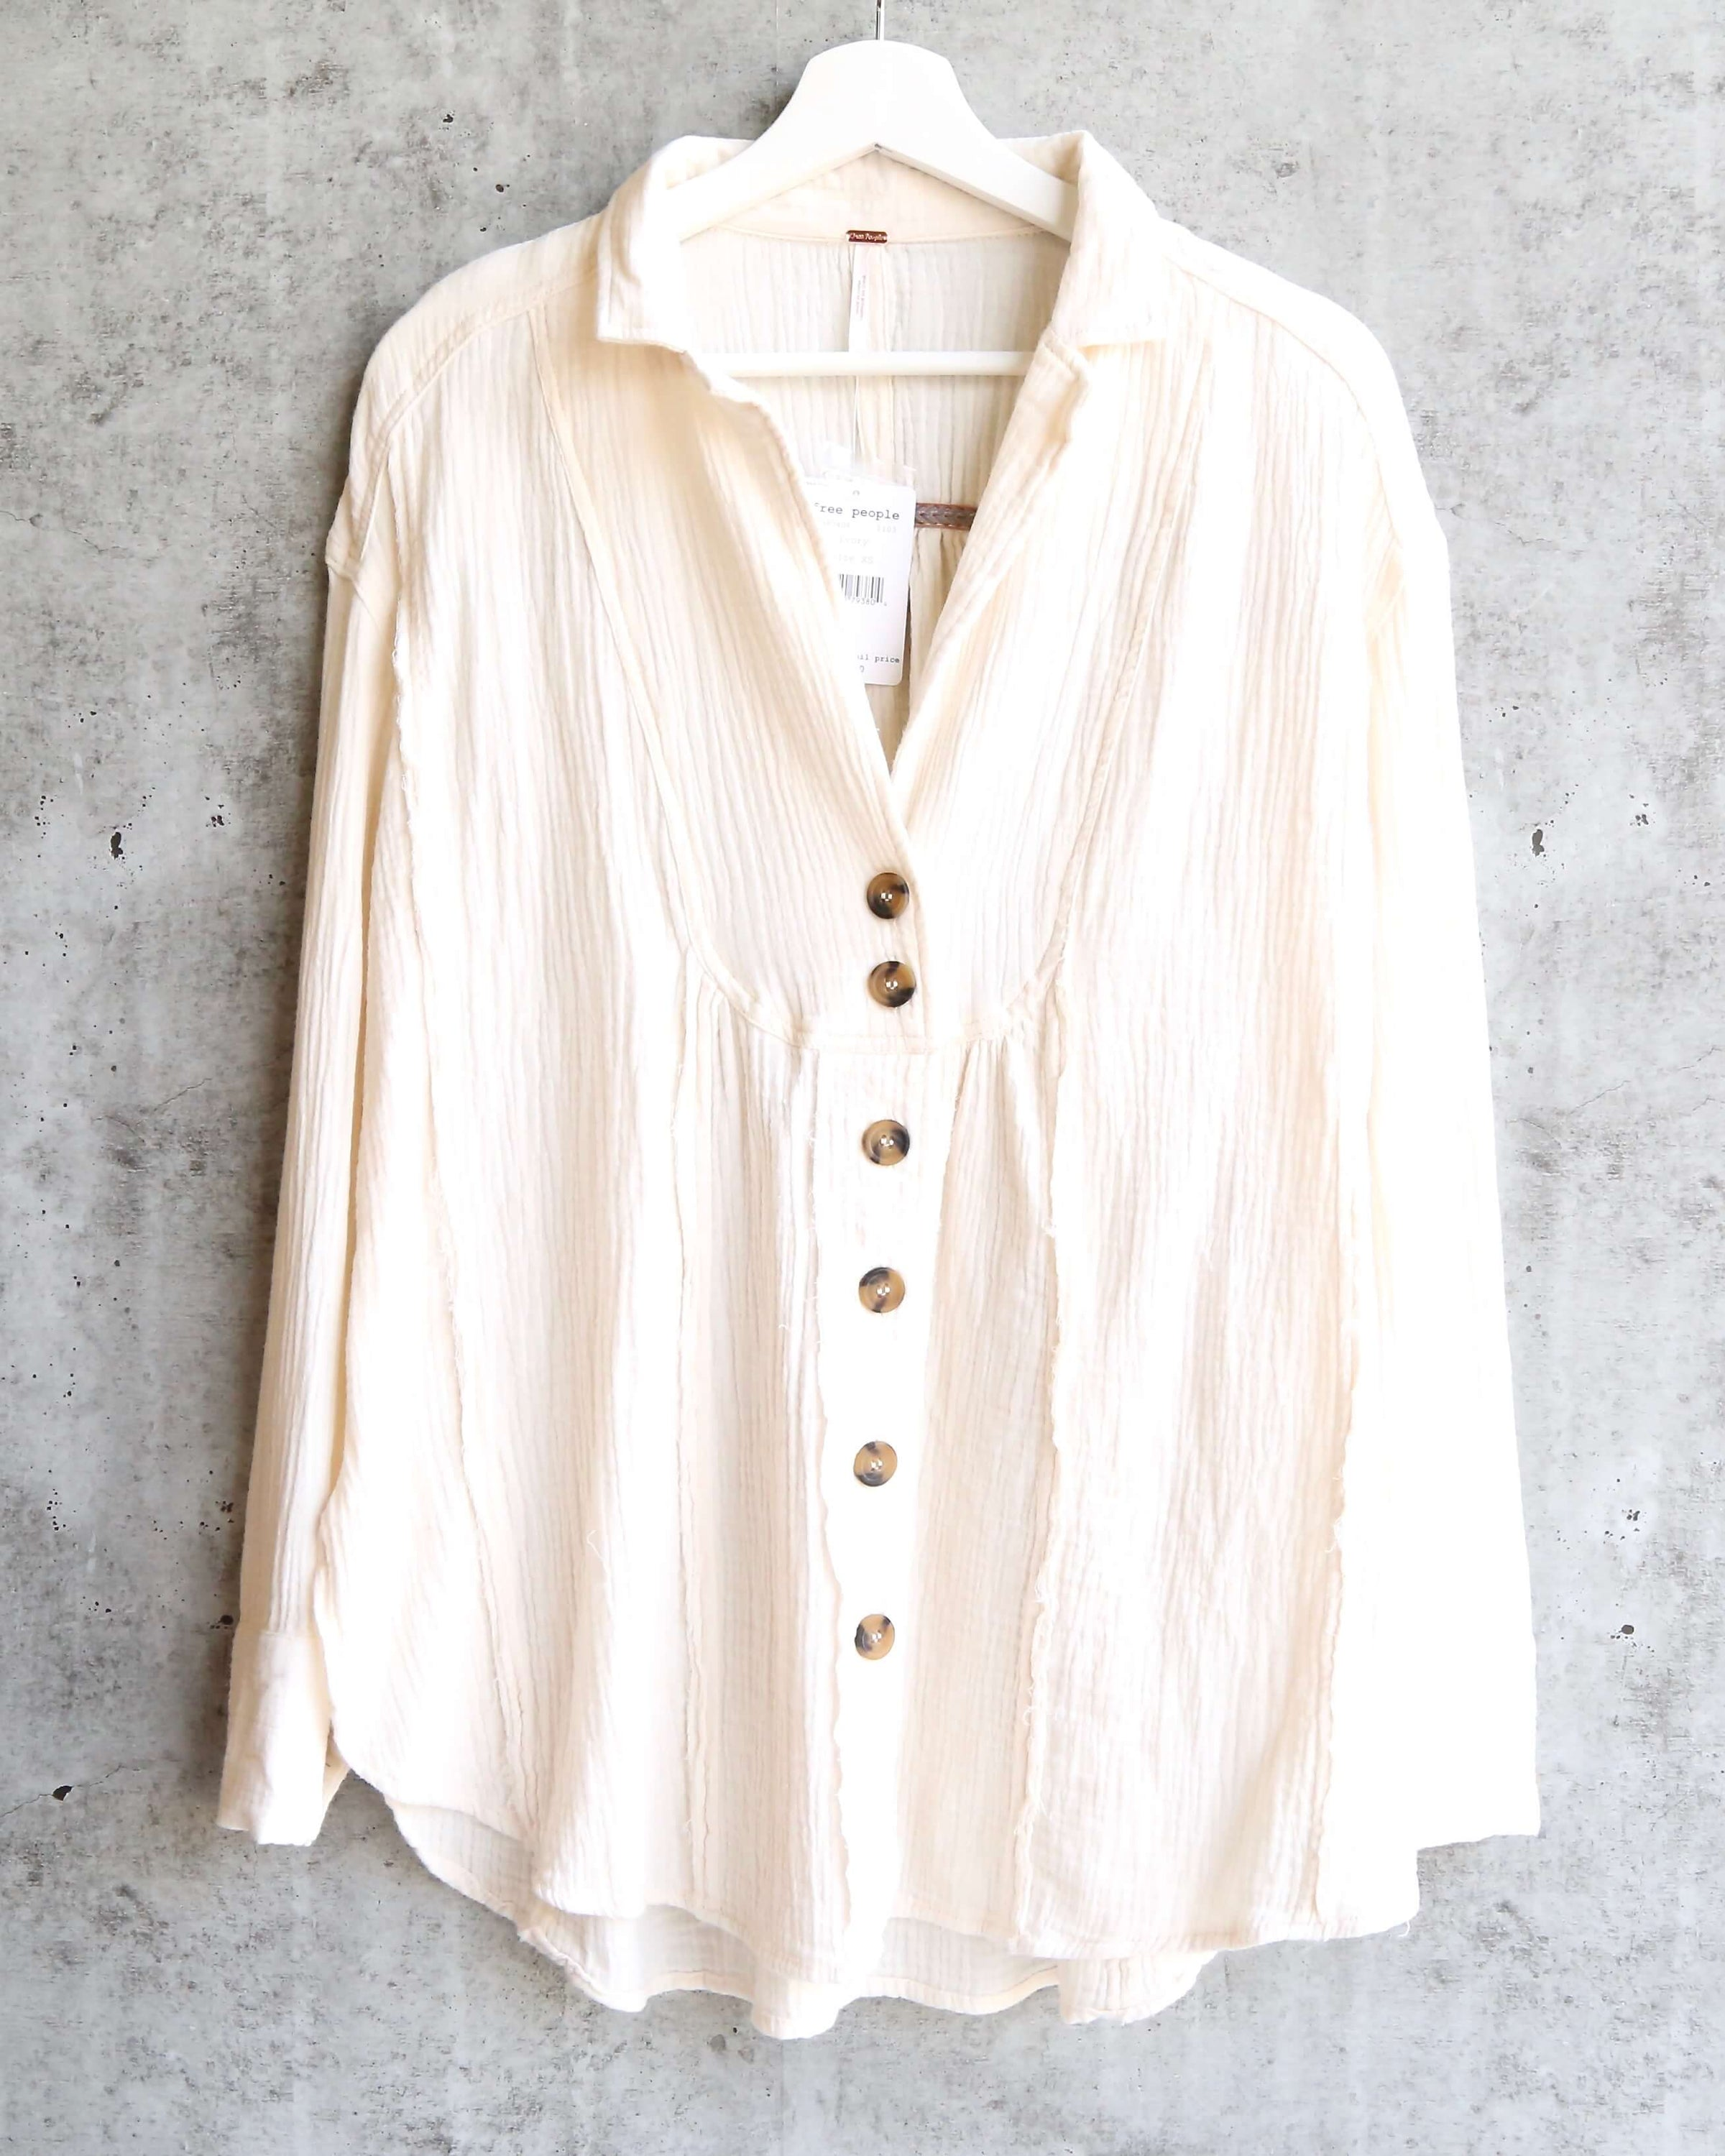 298351ce518e29 Free People - All About The Feels Linen Button Down Top - Ivory - XS - IVORY